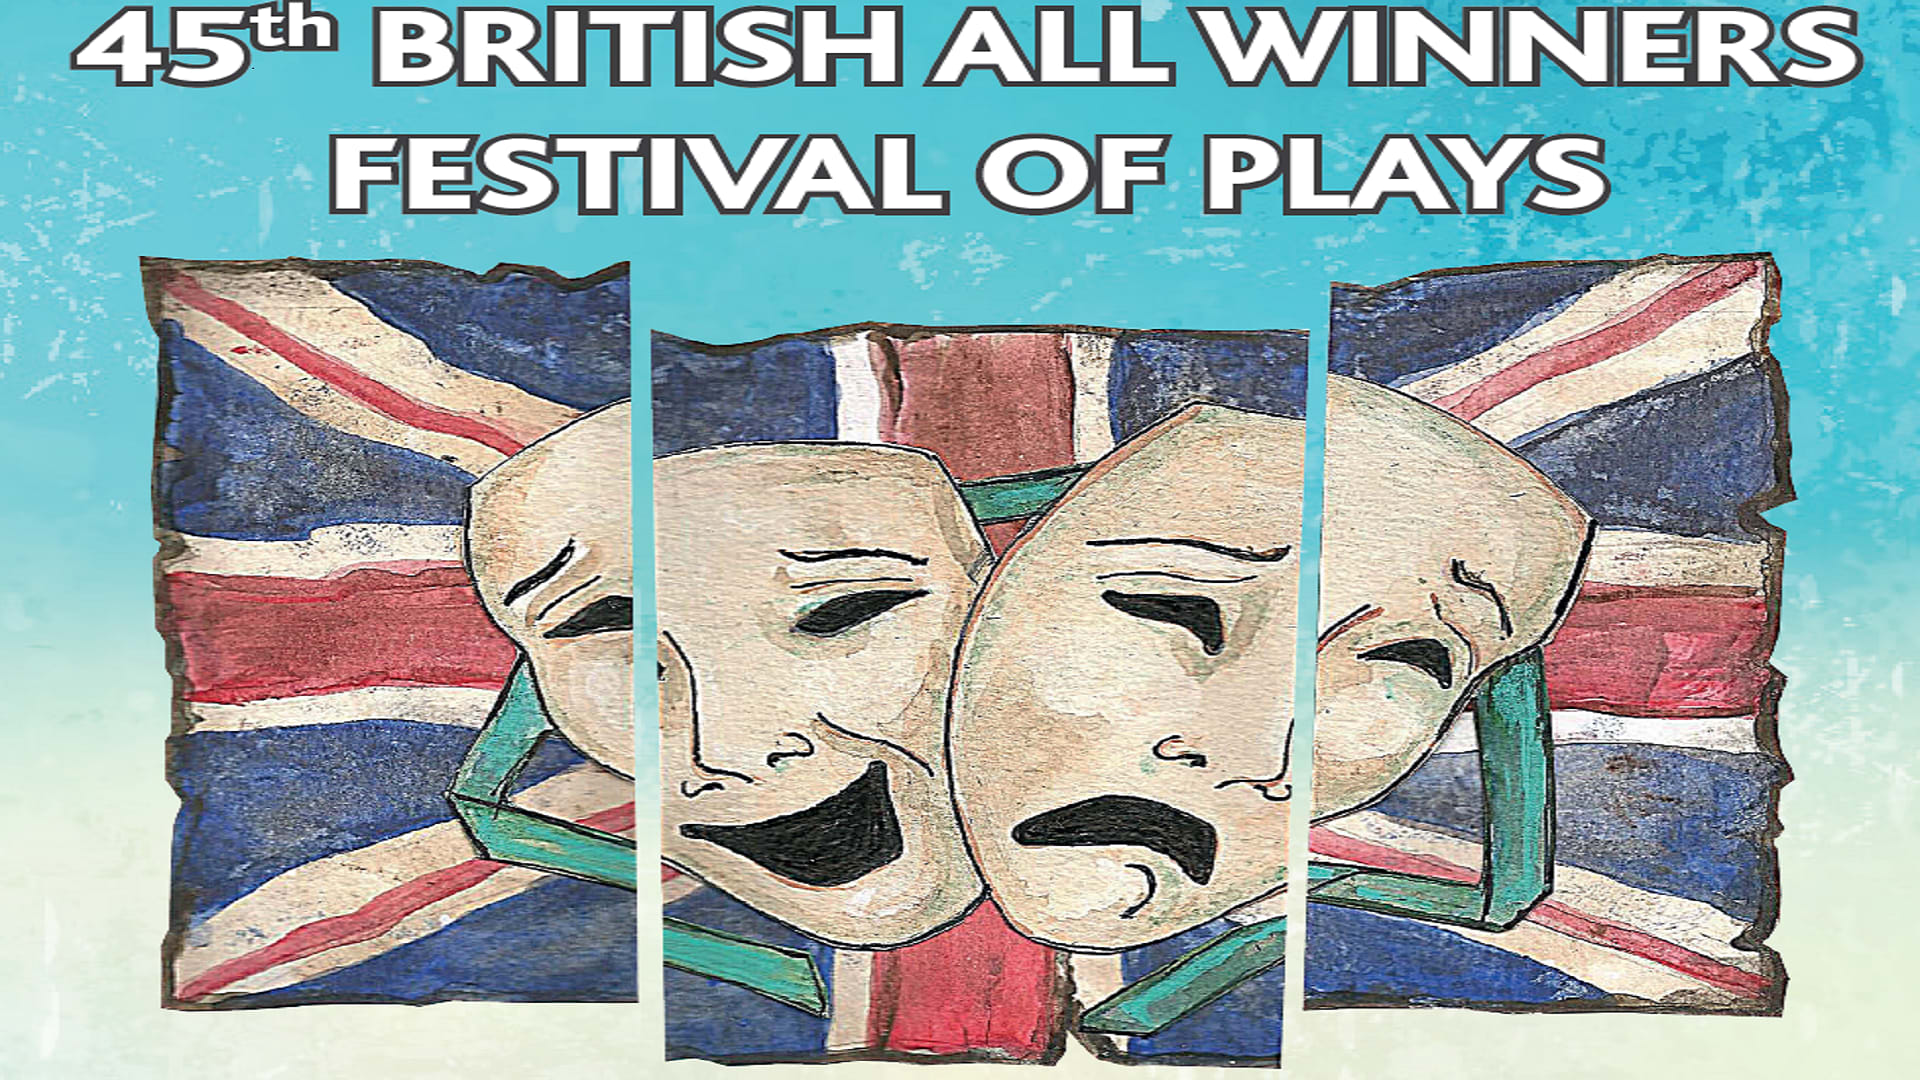 British All Winners Festival of Plays